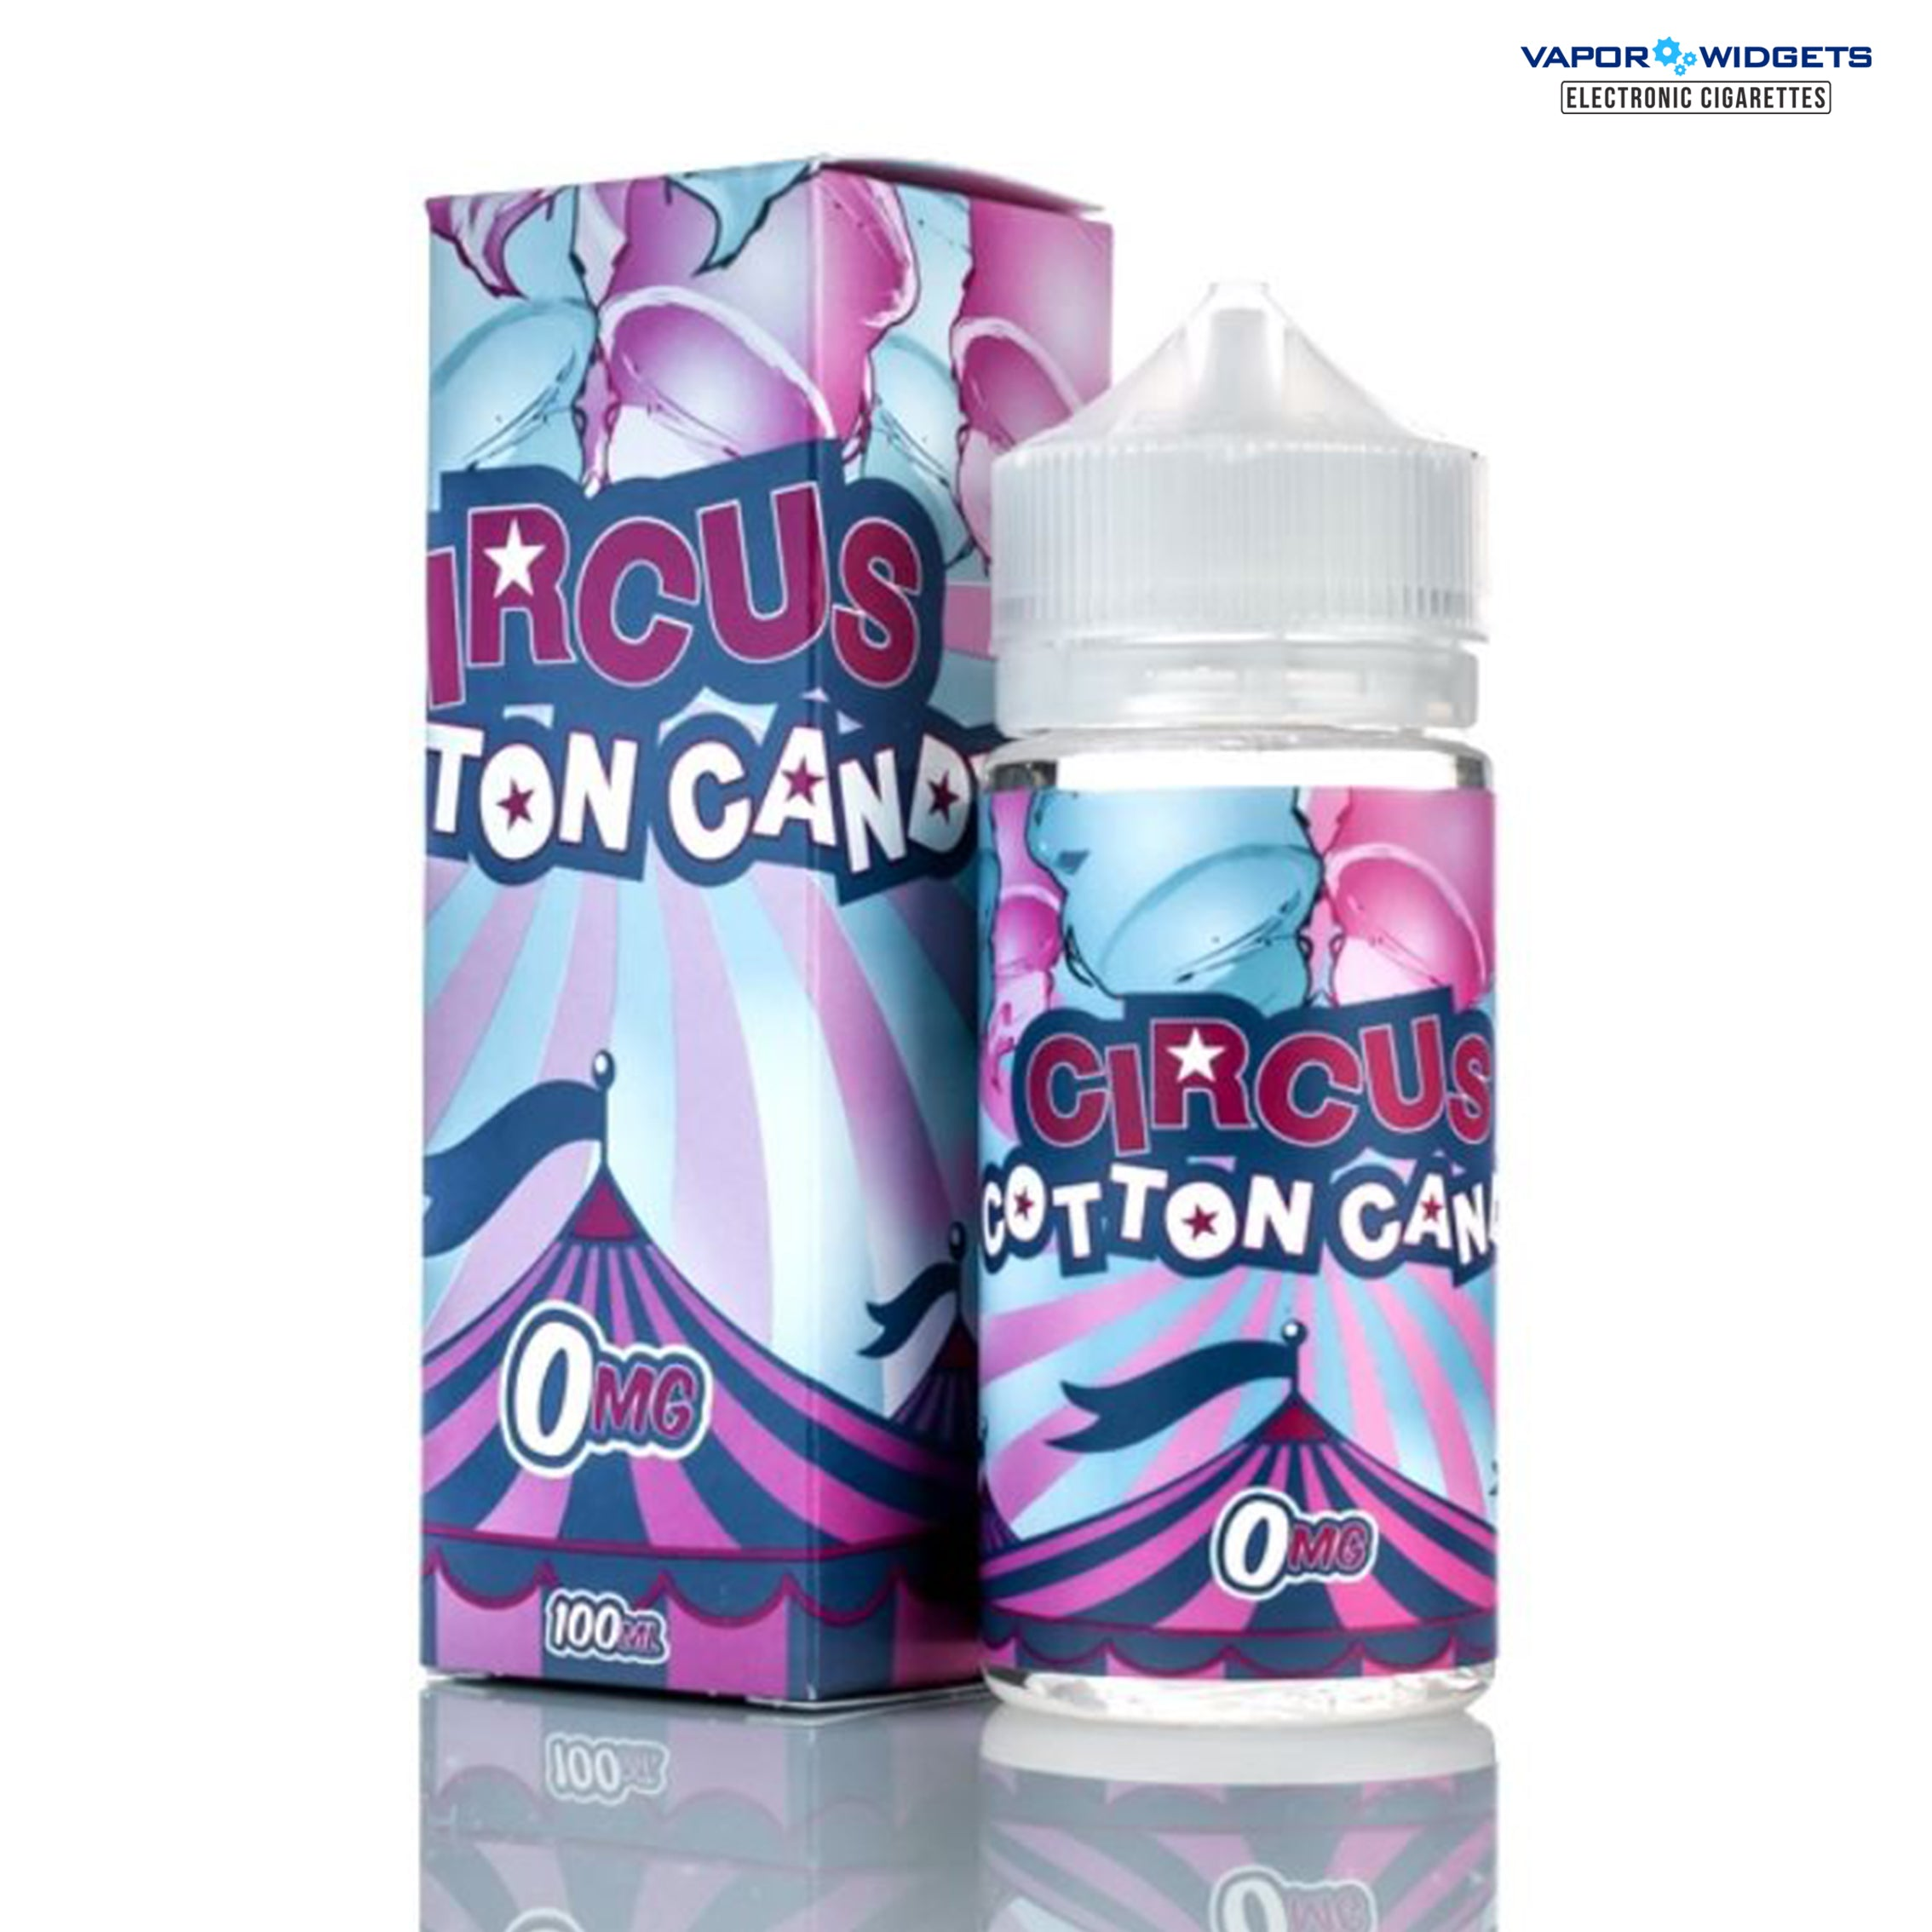 Circus Cookie Cotton Candy High VG E-Liquid | Vapor Widgets